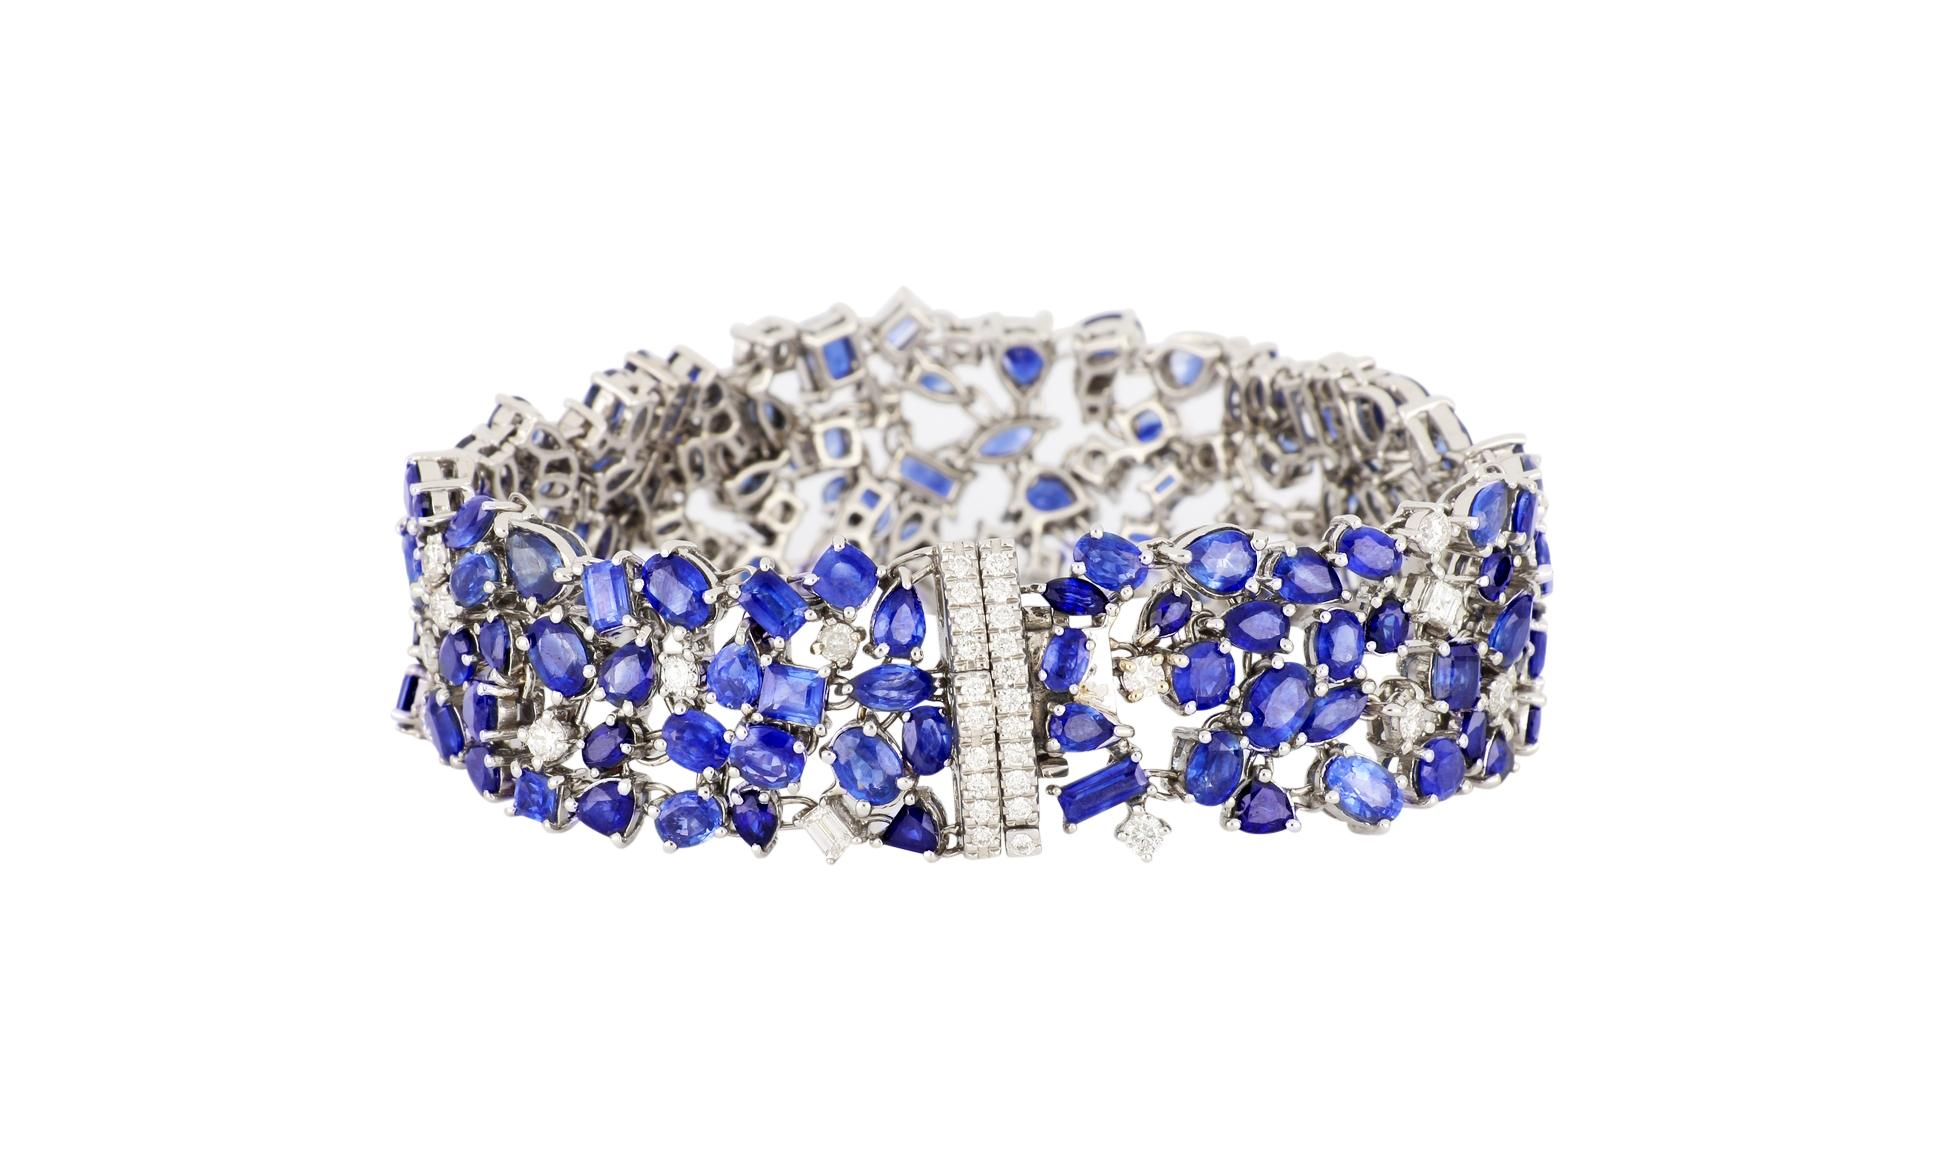 18K white gold bracelet set with 31.59cts of sapphires & 3.41cts of diamonds